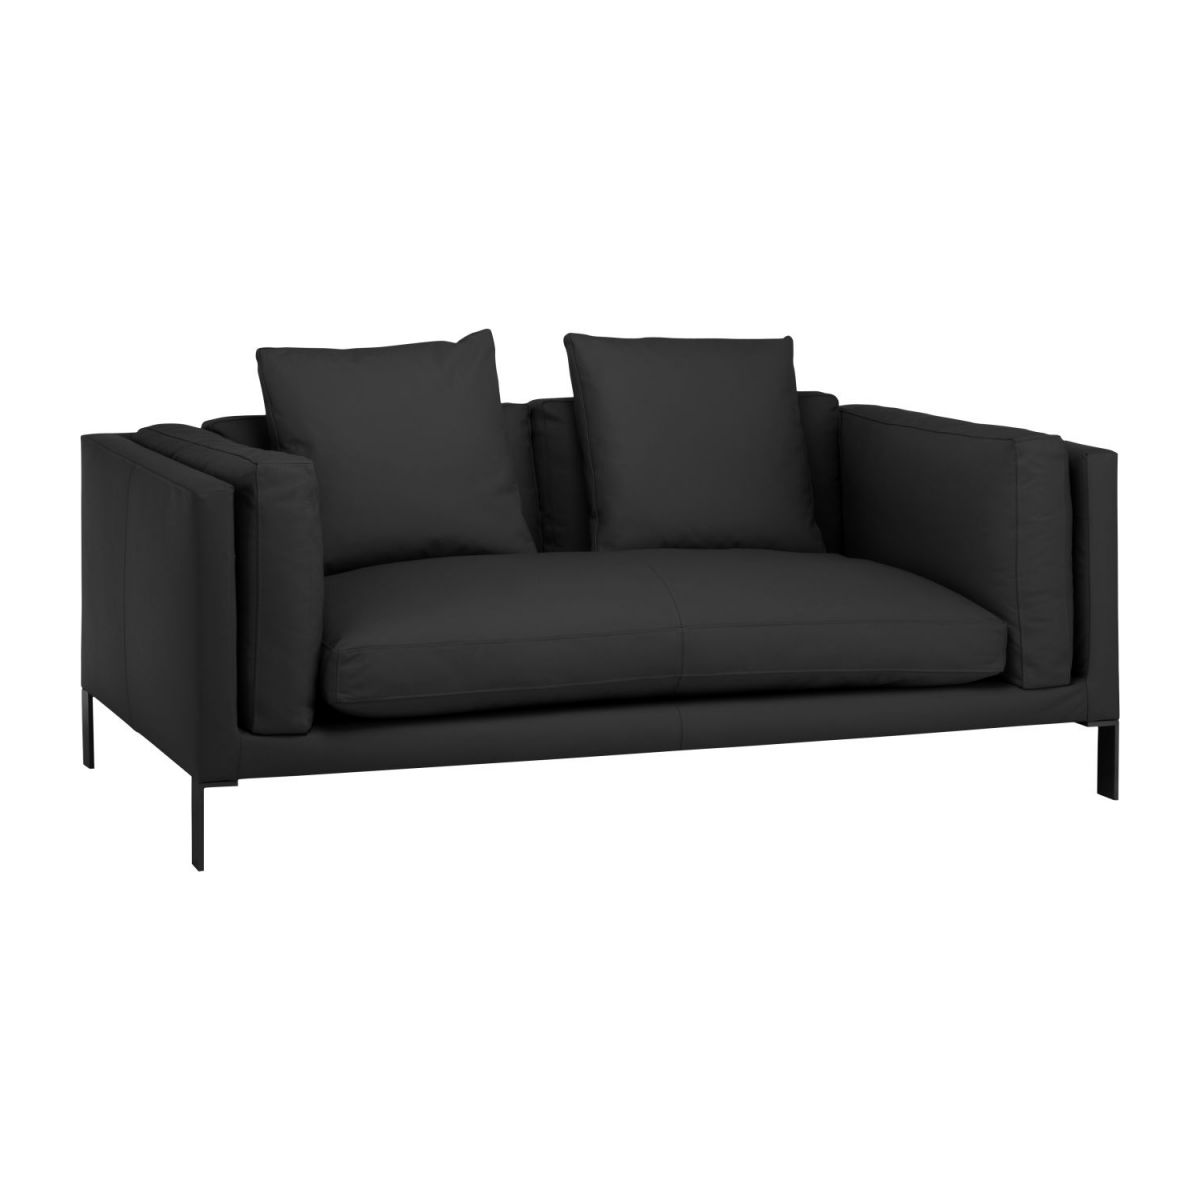 Couchgarnituren In Leder Sofa Leder Schwarz 2 Sitzer Sofa Ideas